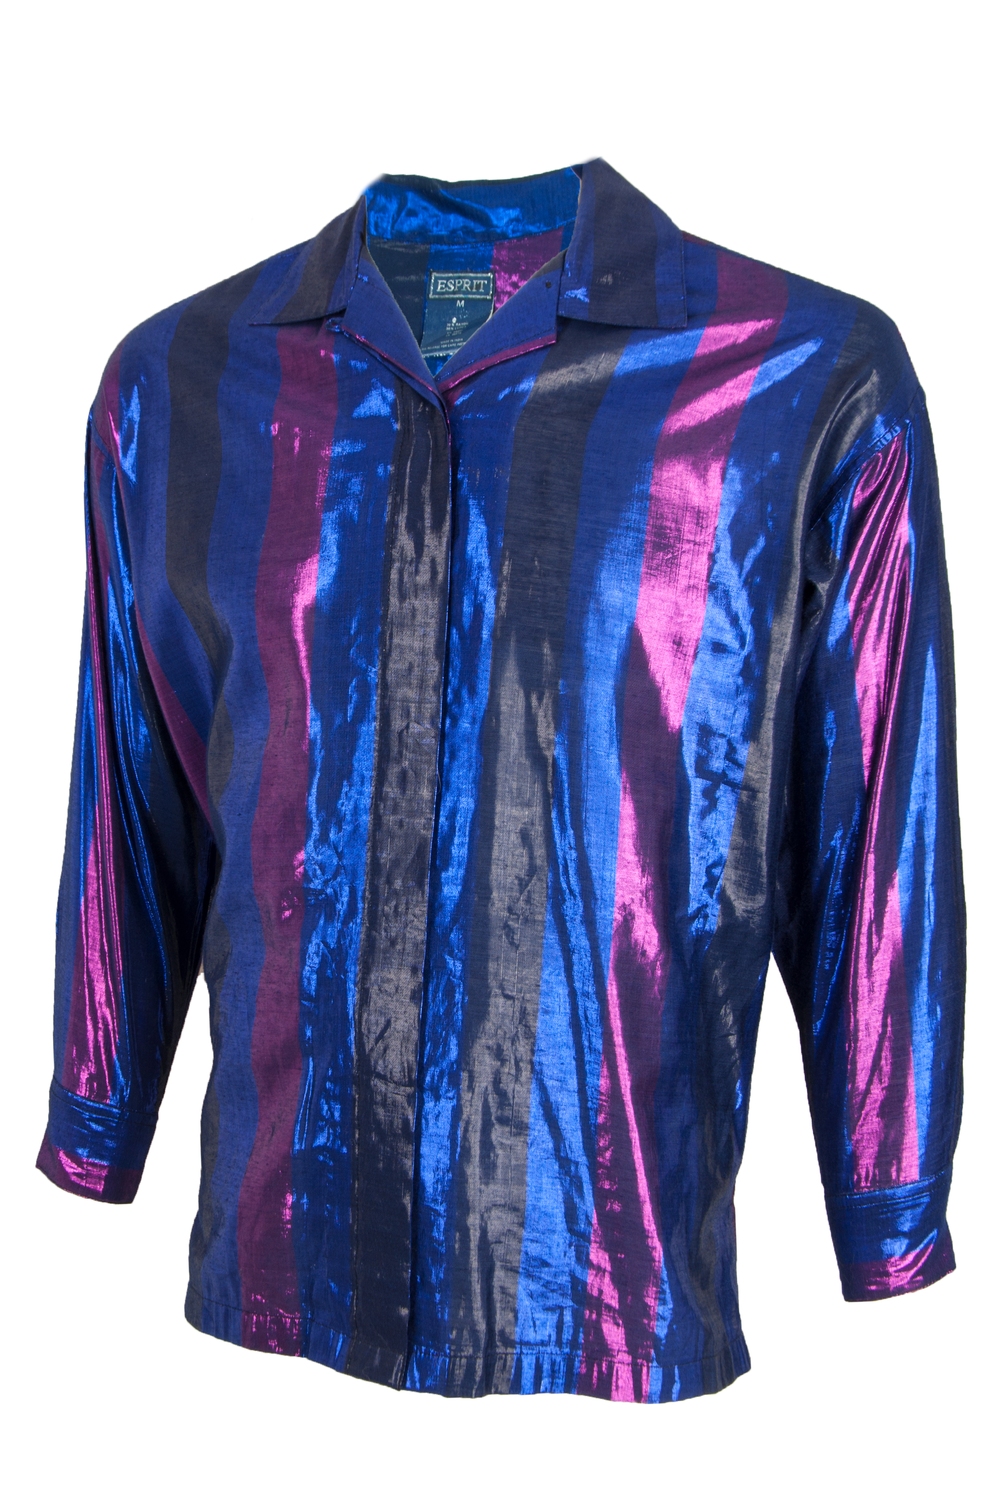 Vintage iridescent shirt featuring blue with pink stripes and button front closure